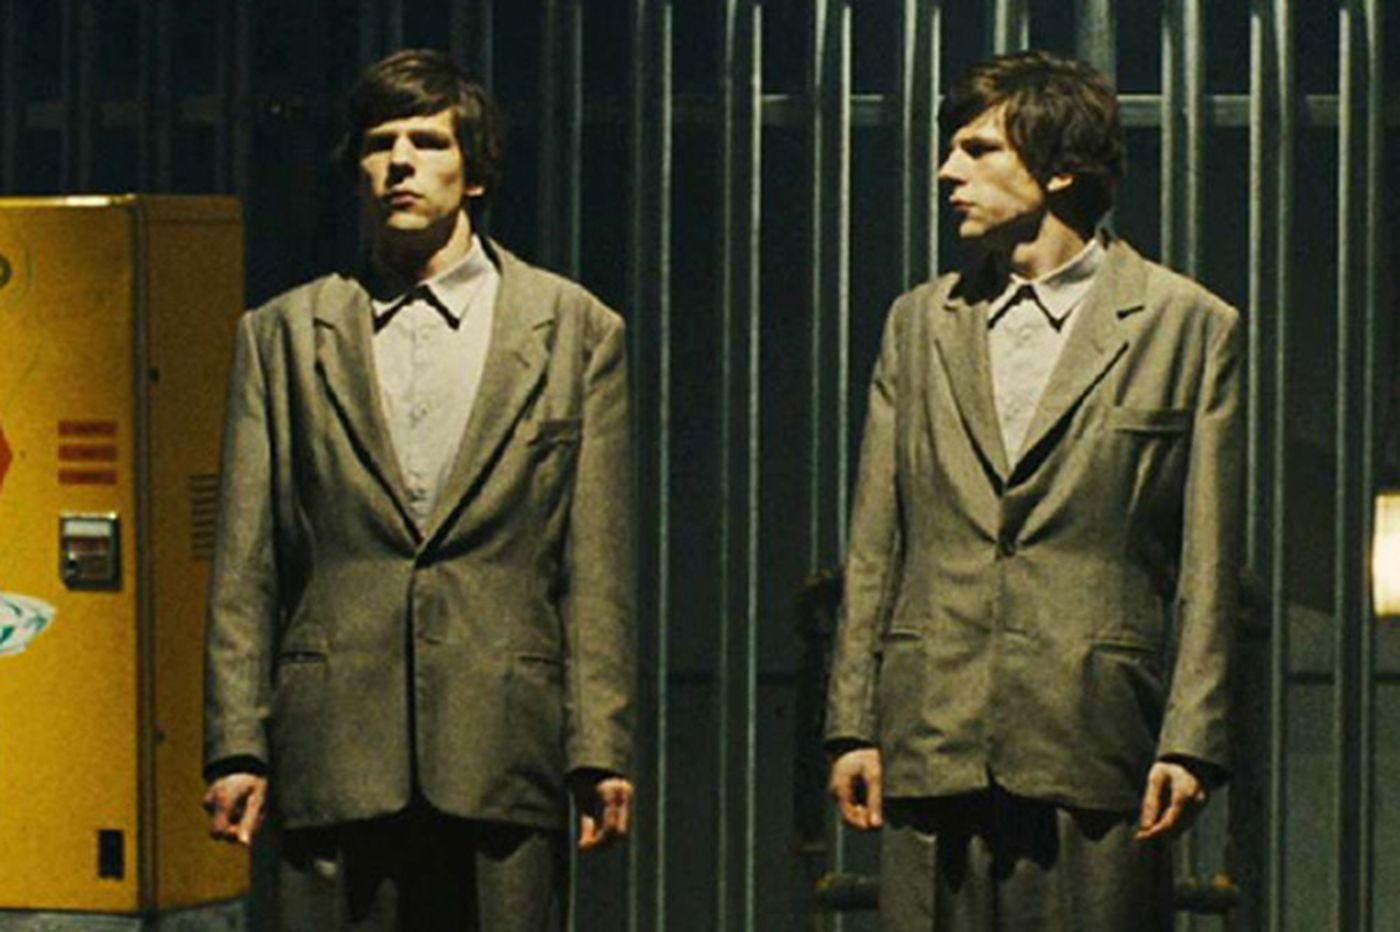 'The Double': An amusing doppelganger nightmare